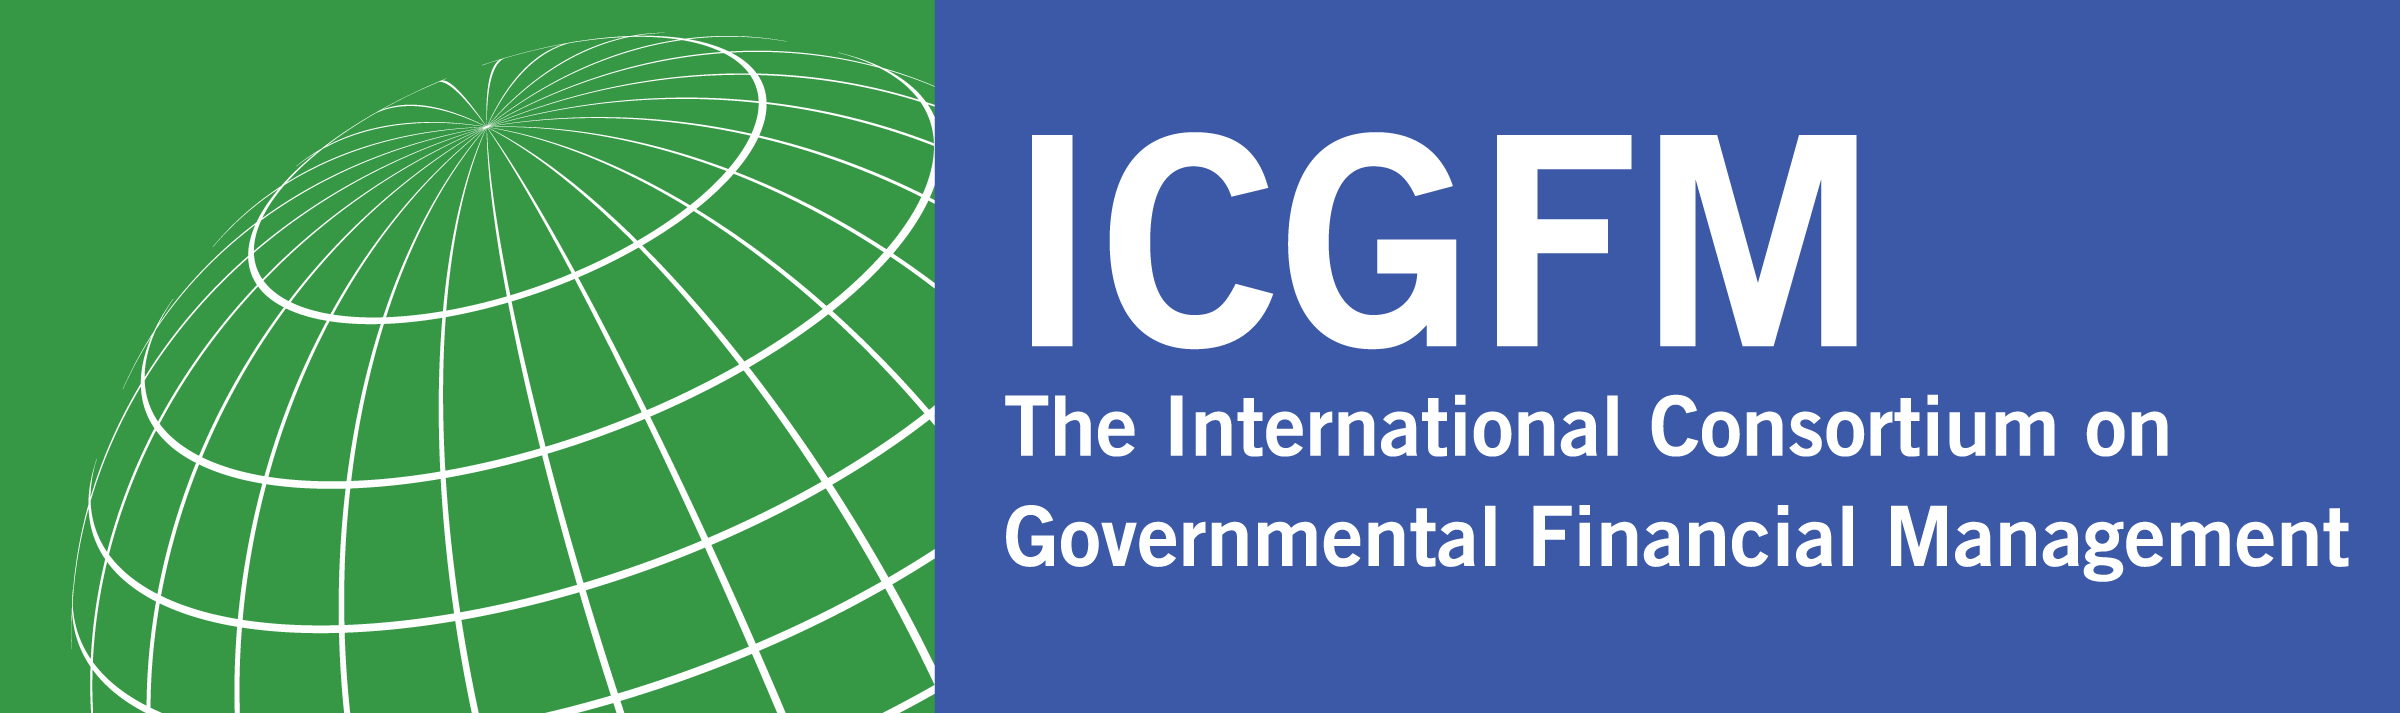 The International Consortium on Governmental Financial Management (ICGFM)